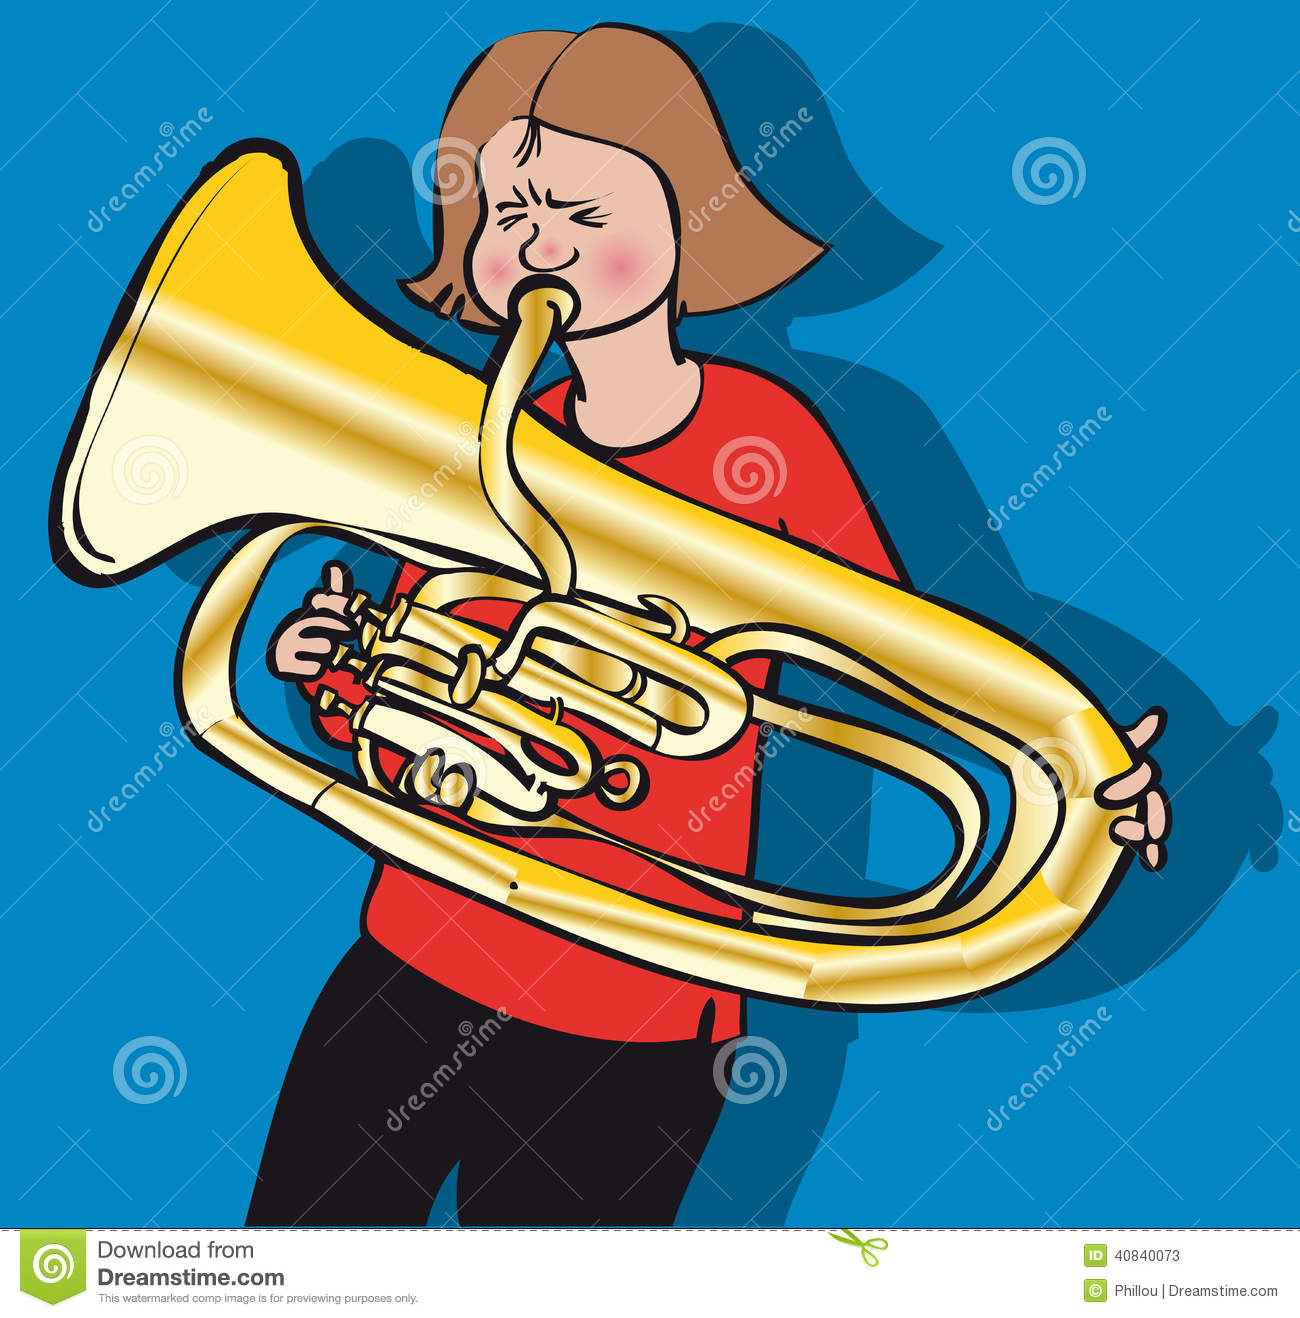 hight resolution of girl playing tuba stock illustrations 2 girl playing tuba stock illustrations vectors clipart dreamstime